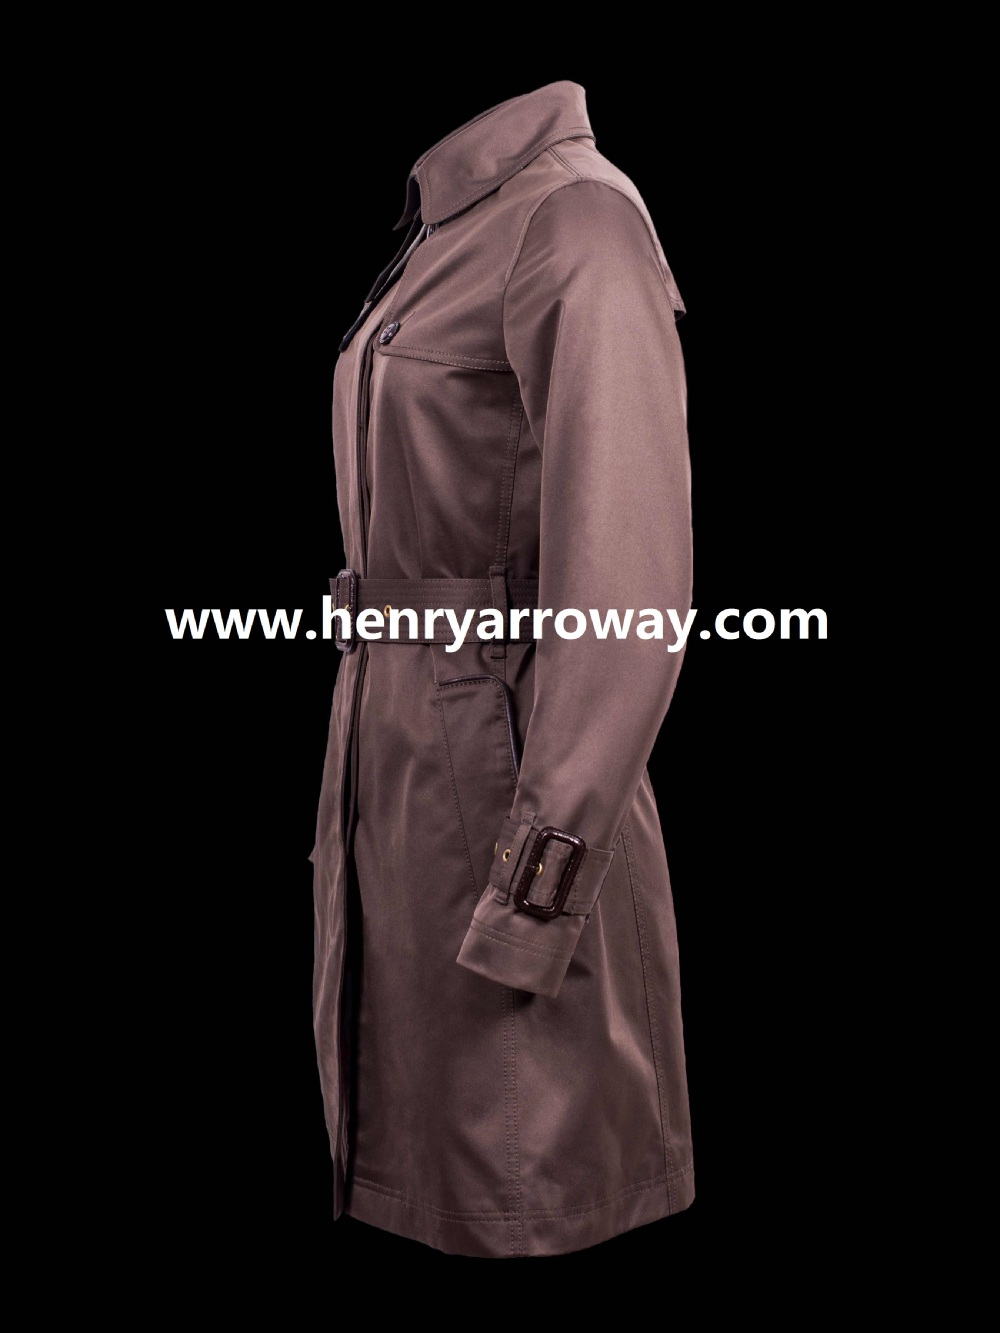 Fashion european style woman trench coat 100% cotton fabric from henry Arroway Spain